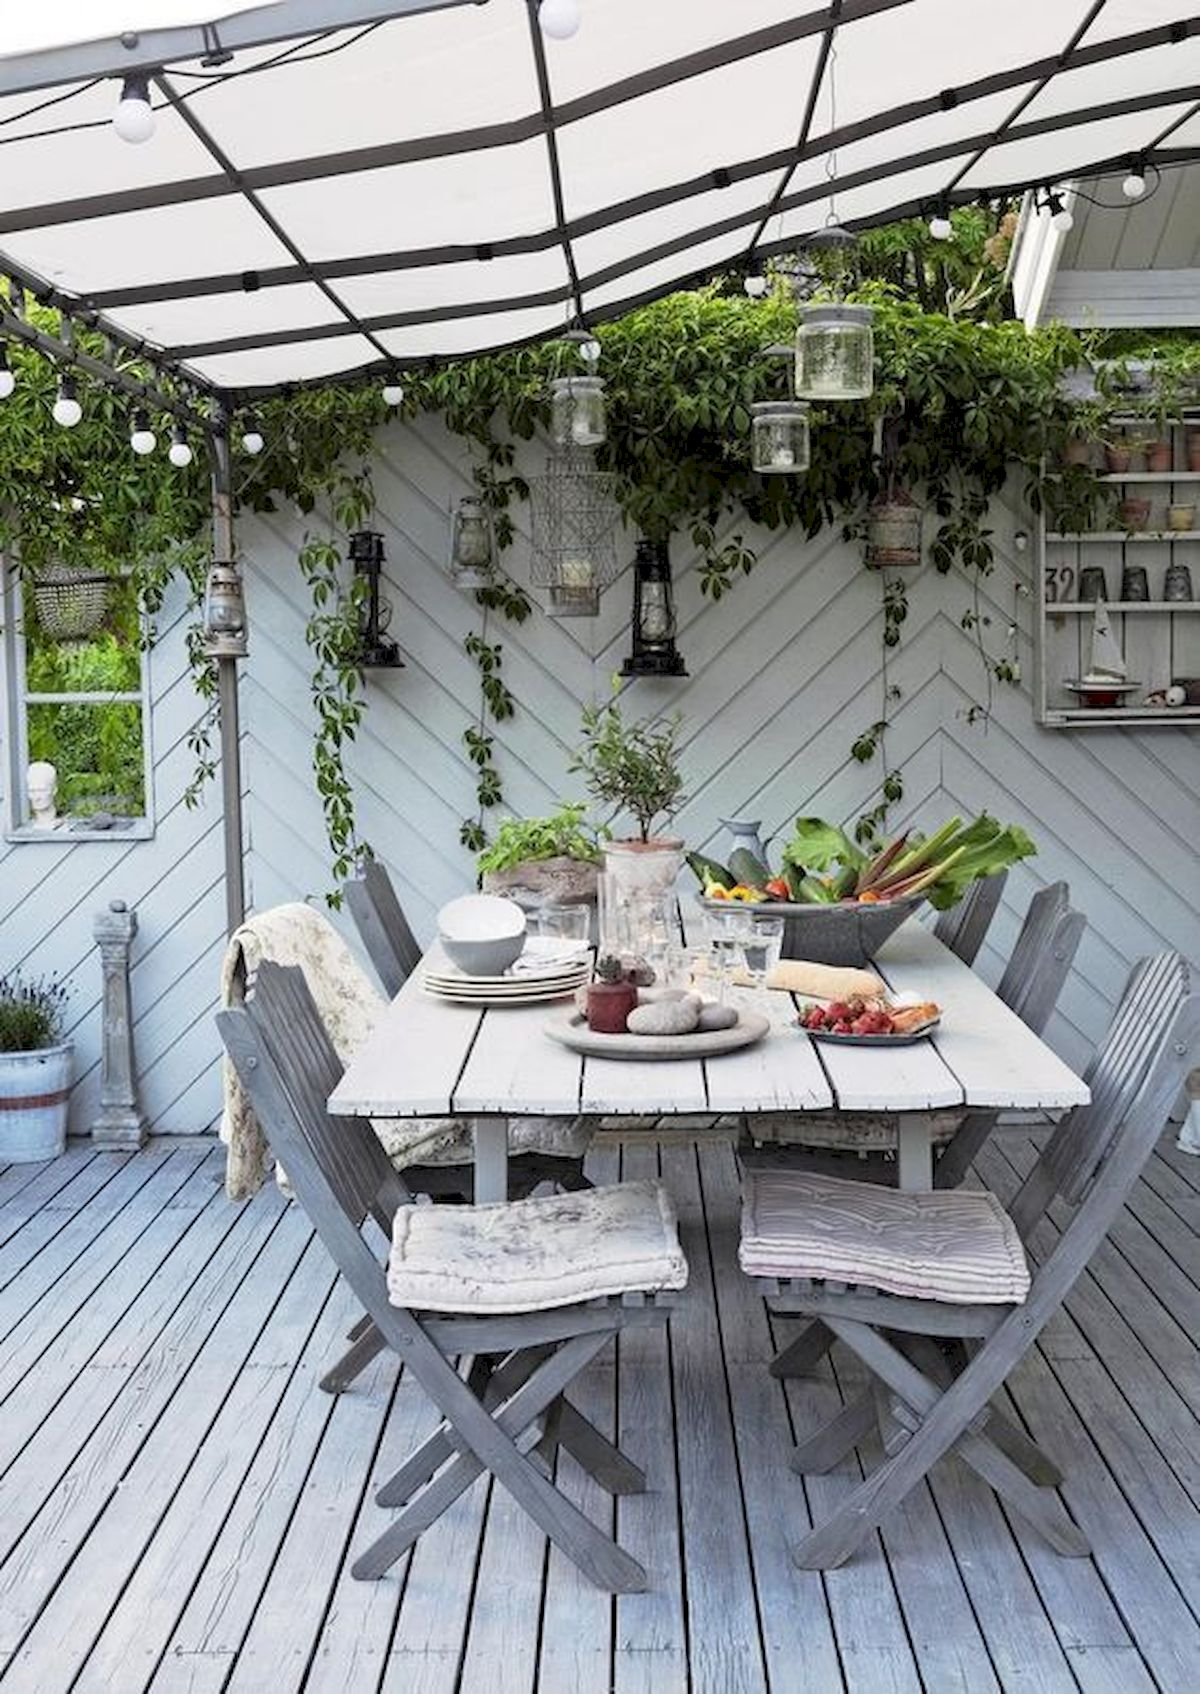 50 Awesome Modern Backyard Garden Design Ideas With Hanging Plants (29)